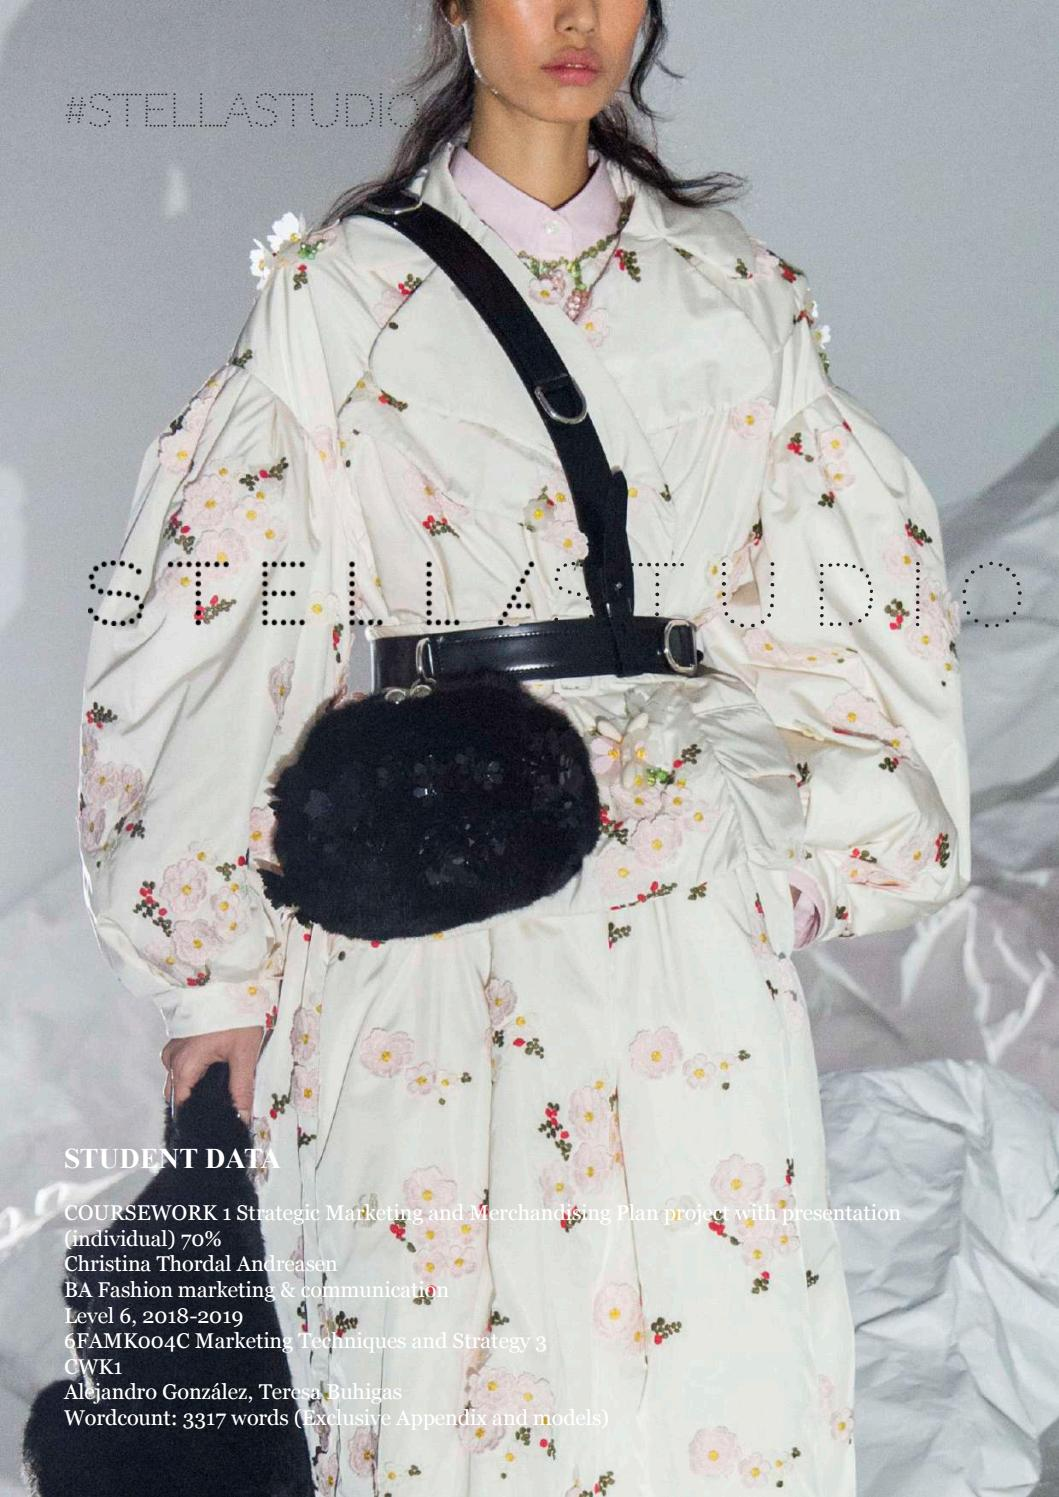 Marketing And Merchandising Plan Stella Mccartney By Christina Thordal Andreasen Issuu